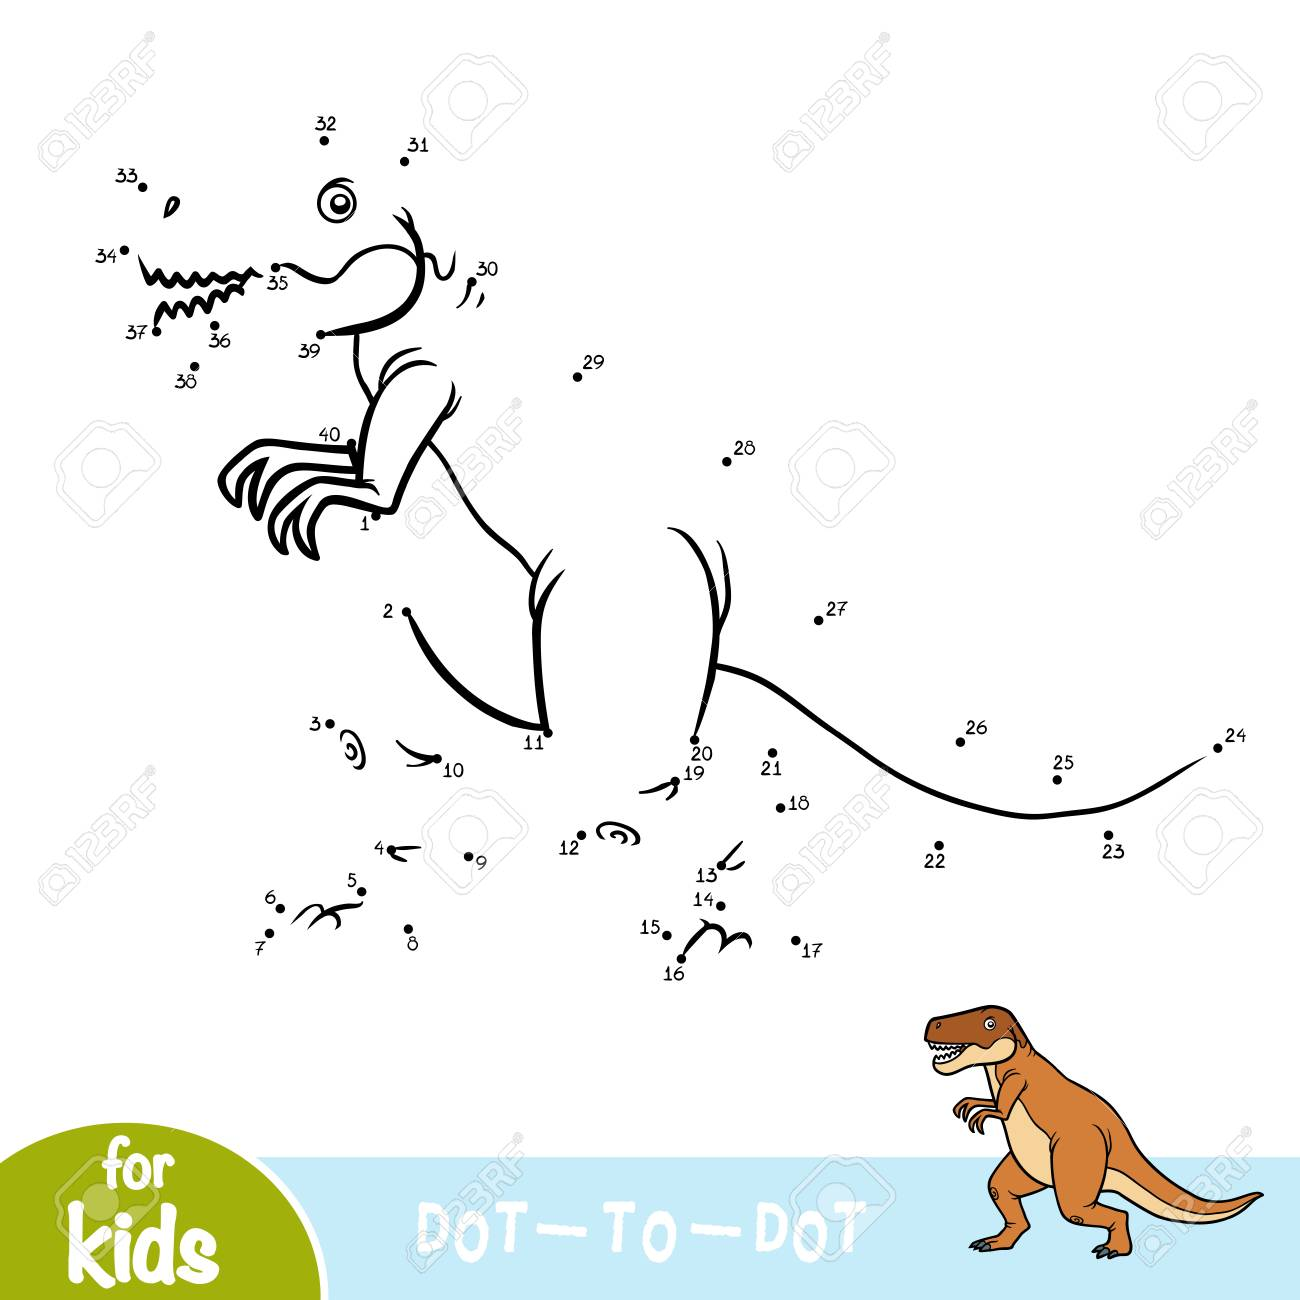 Numbers game, education dot to dot game for children, Tyrannosaurus - 110508339